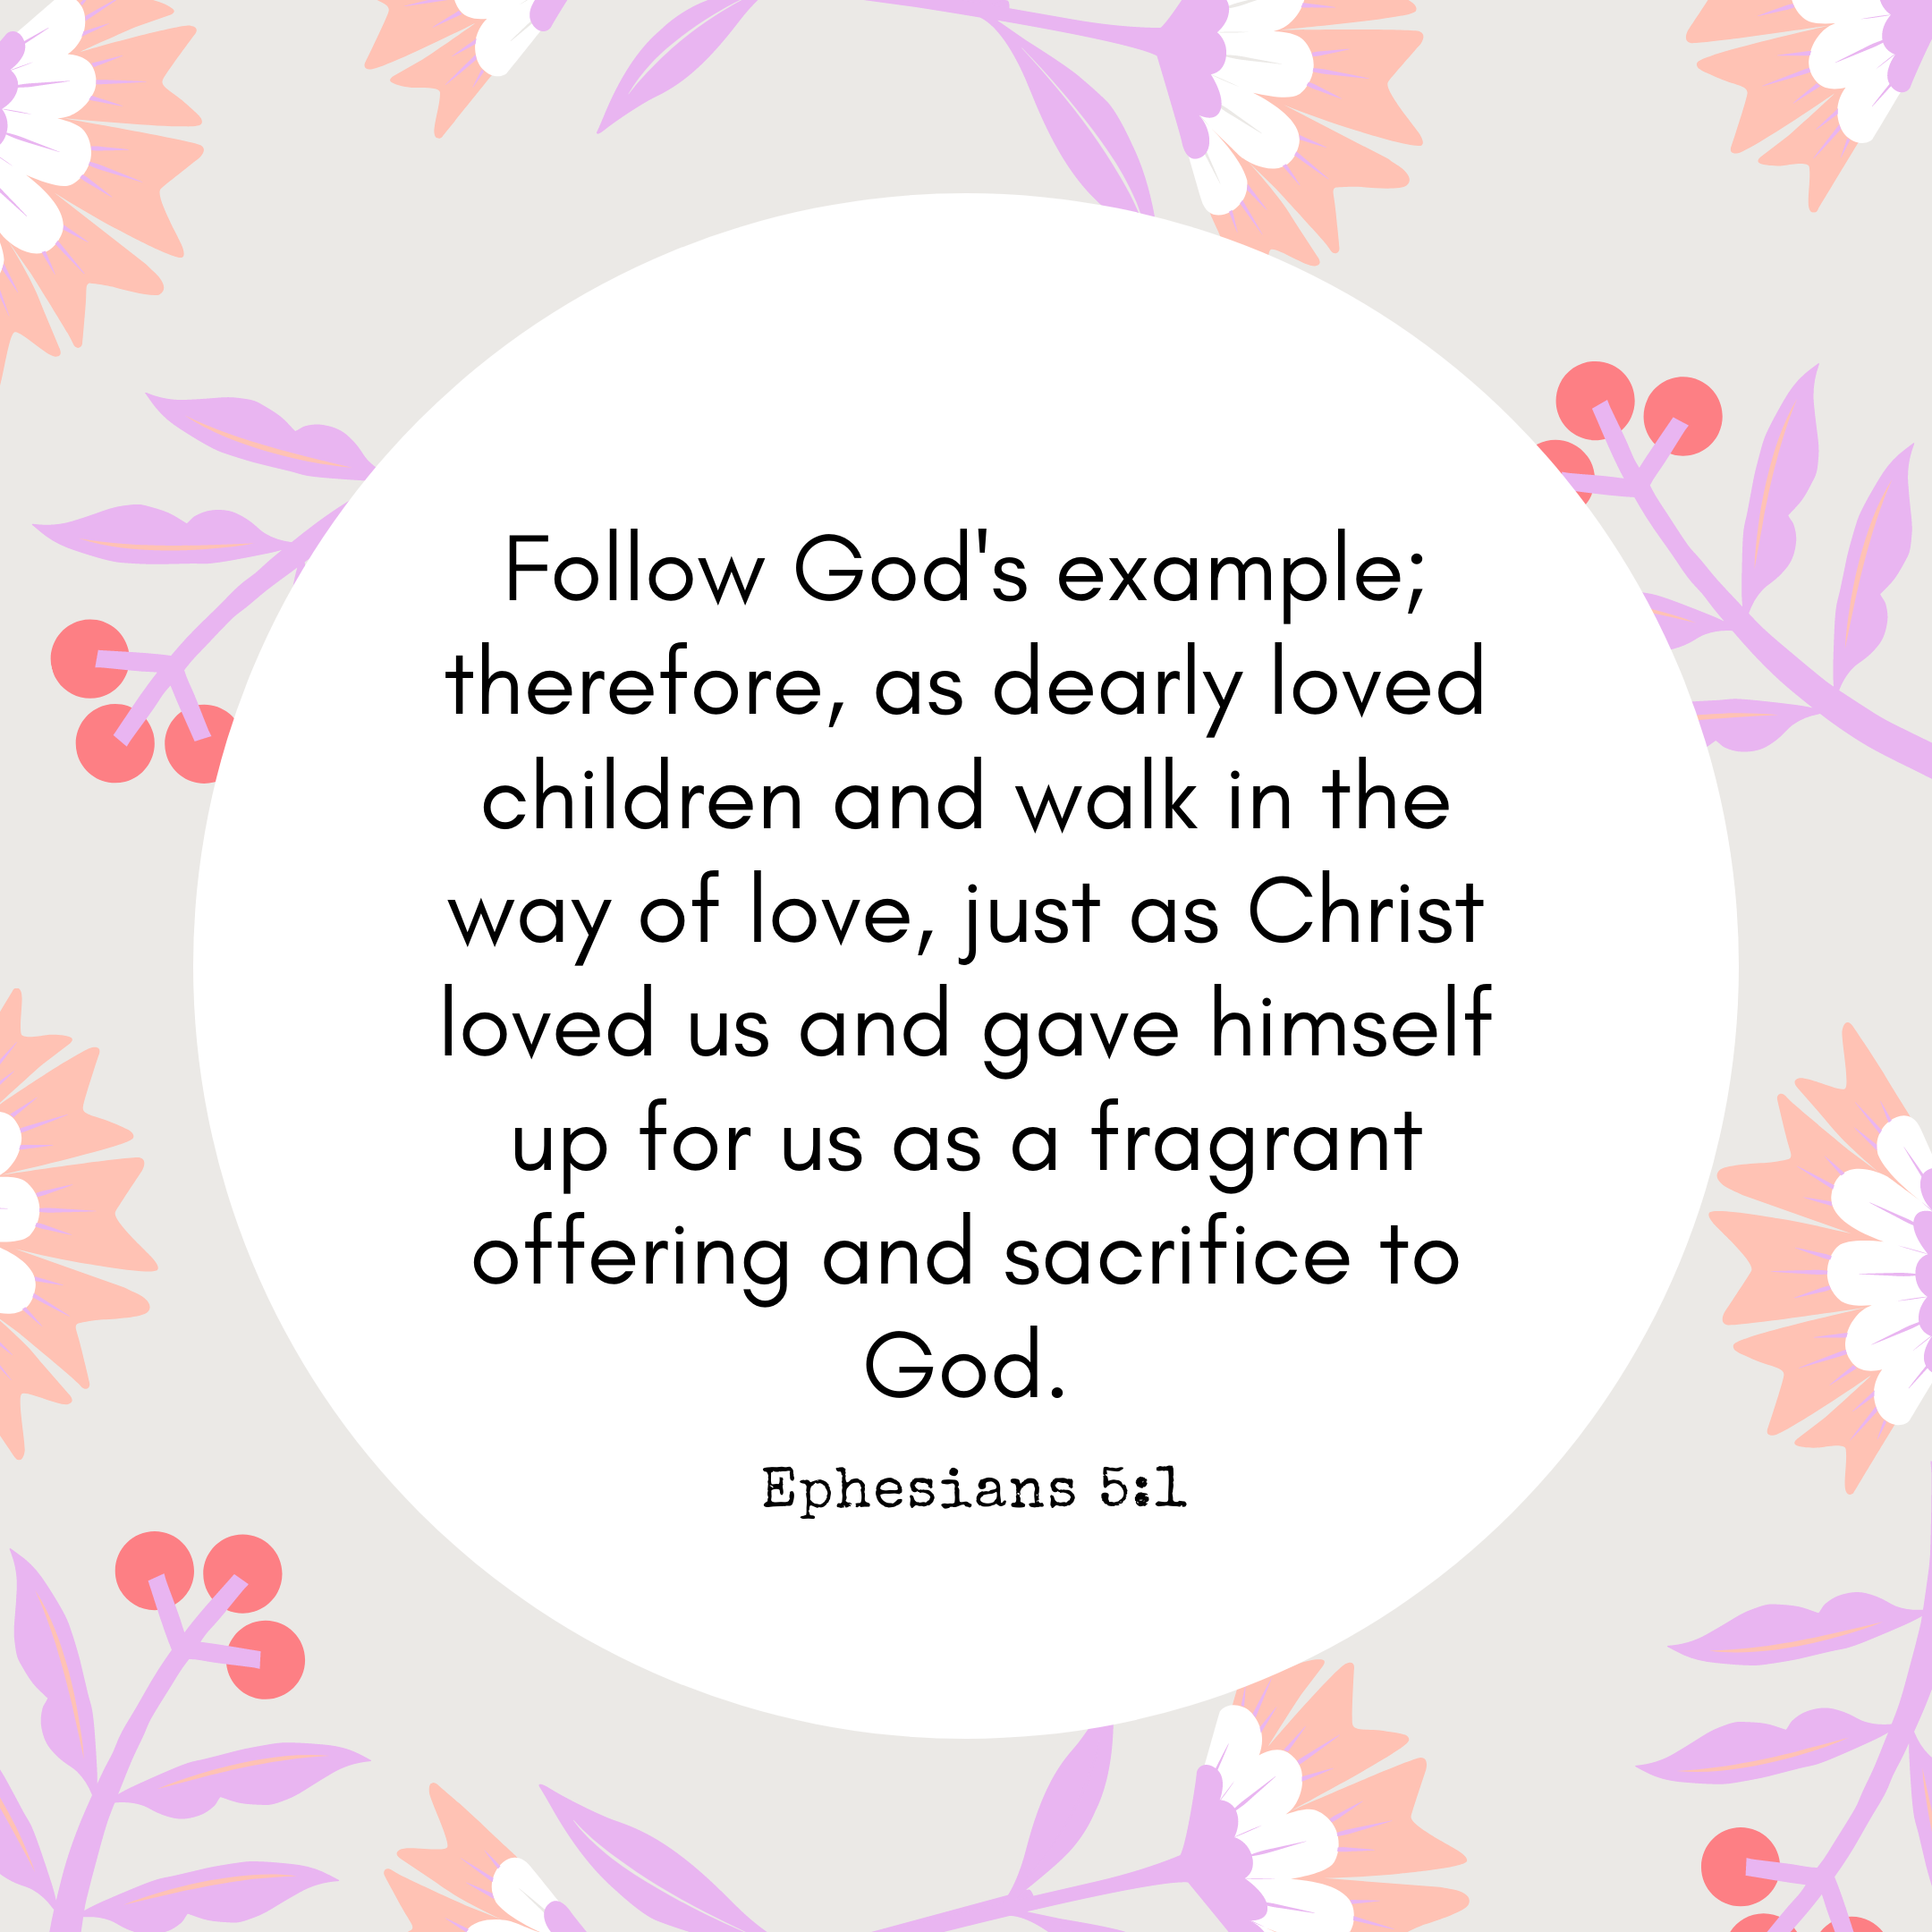 Ephesians 5:1 Follow God's example; therefore, as dearly loved children and walk in the way of love, just as Christ loved us and gave himself up for us as a fragrant offering and sacrifice to God.